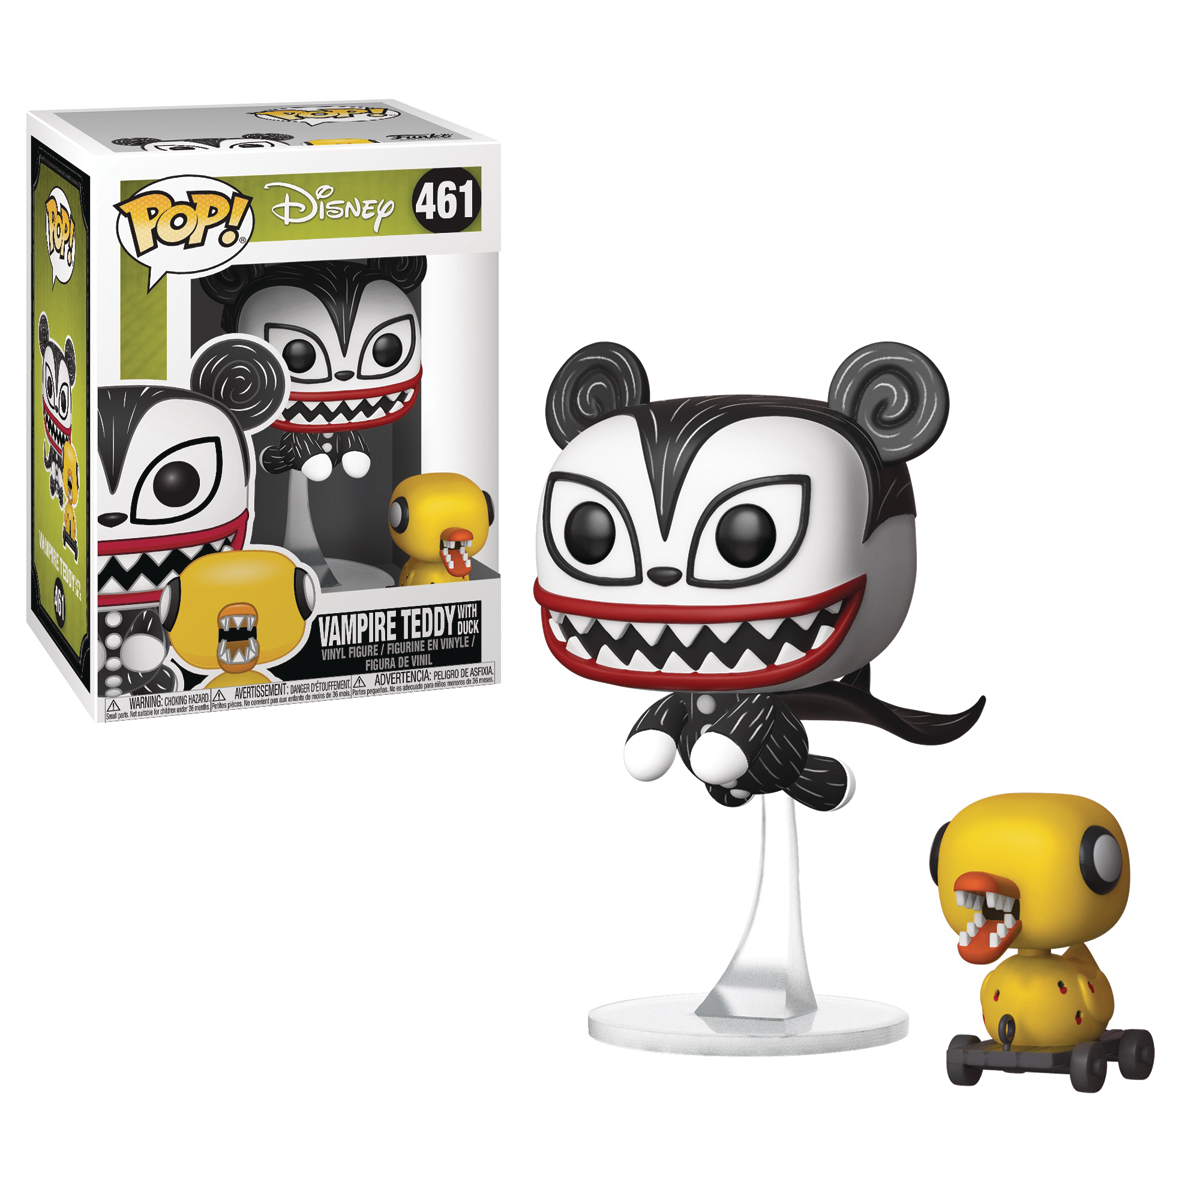 POP DISNEY NBX VAMPIRE TEDDY W/ DUCK